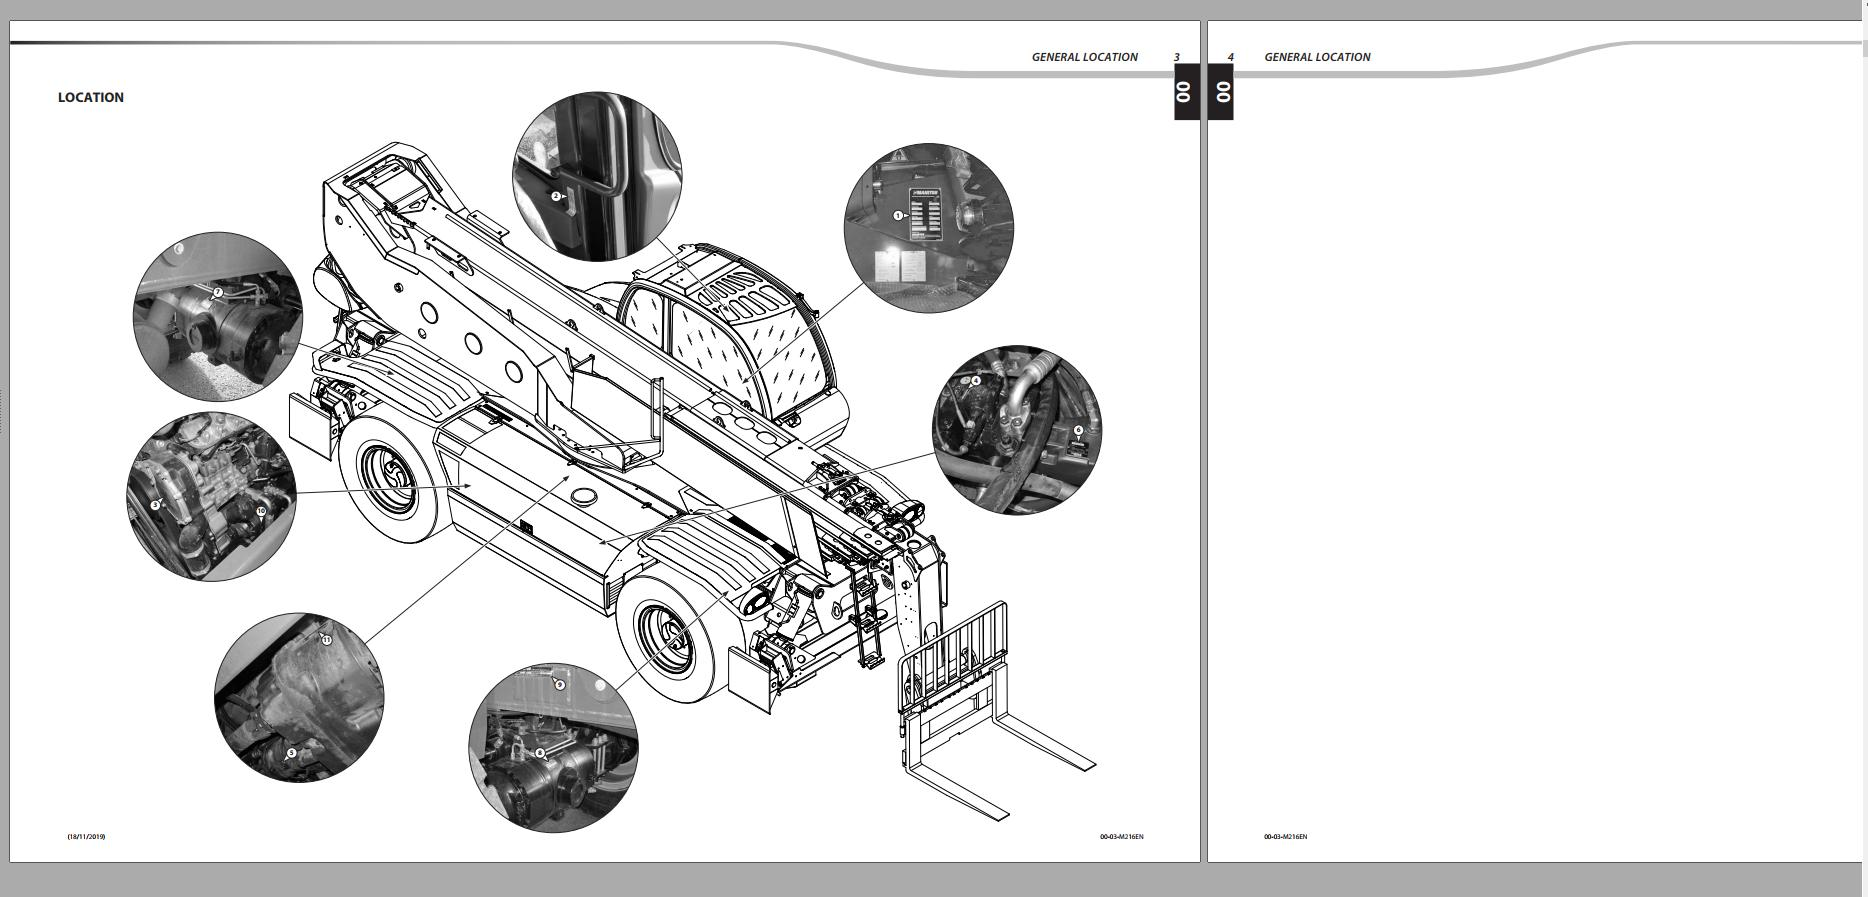 MANITOU Service Part and Operator Manual Full PDF DVD 13